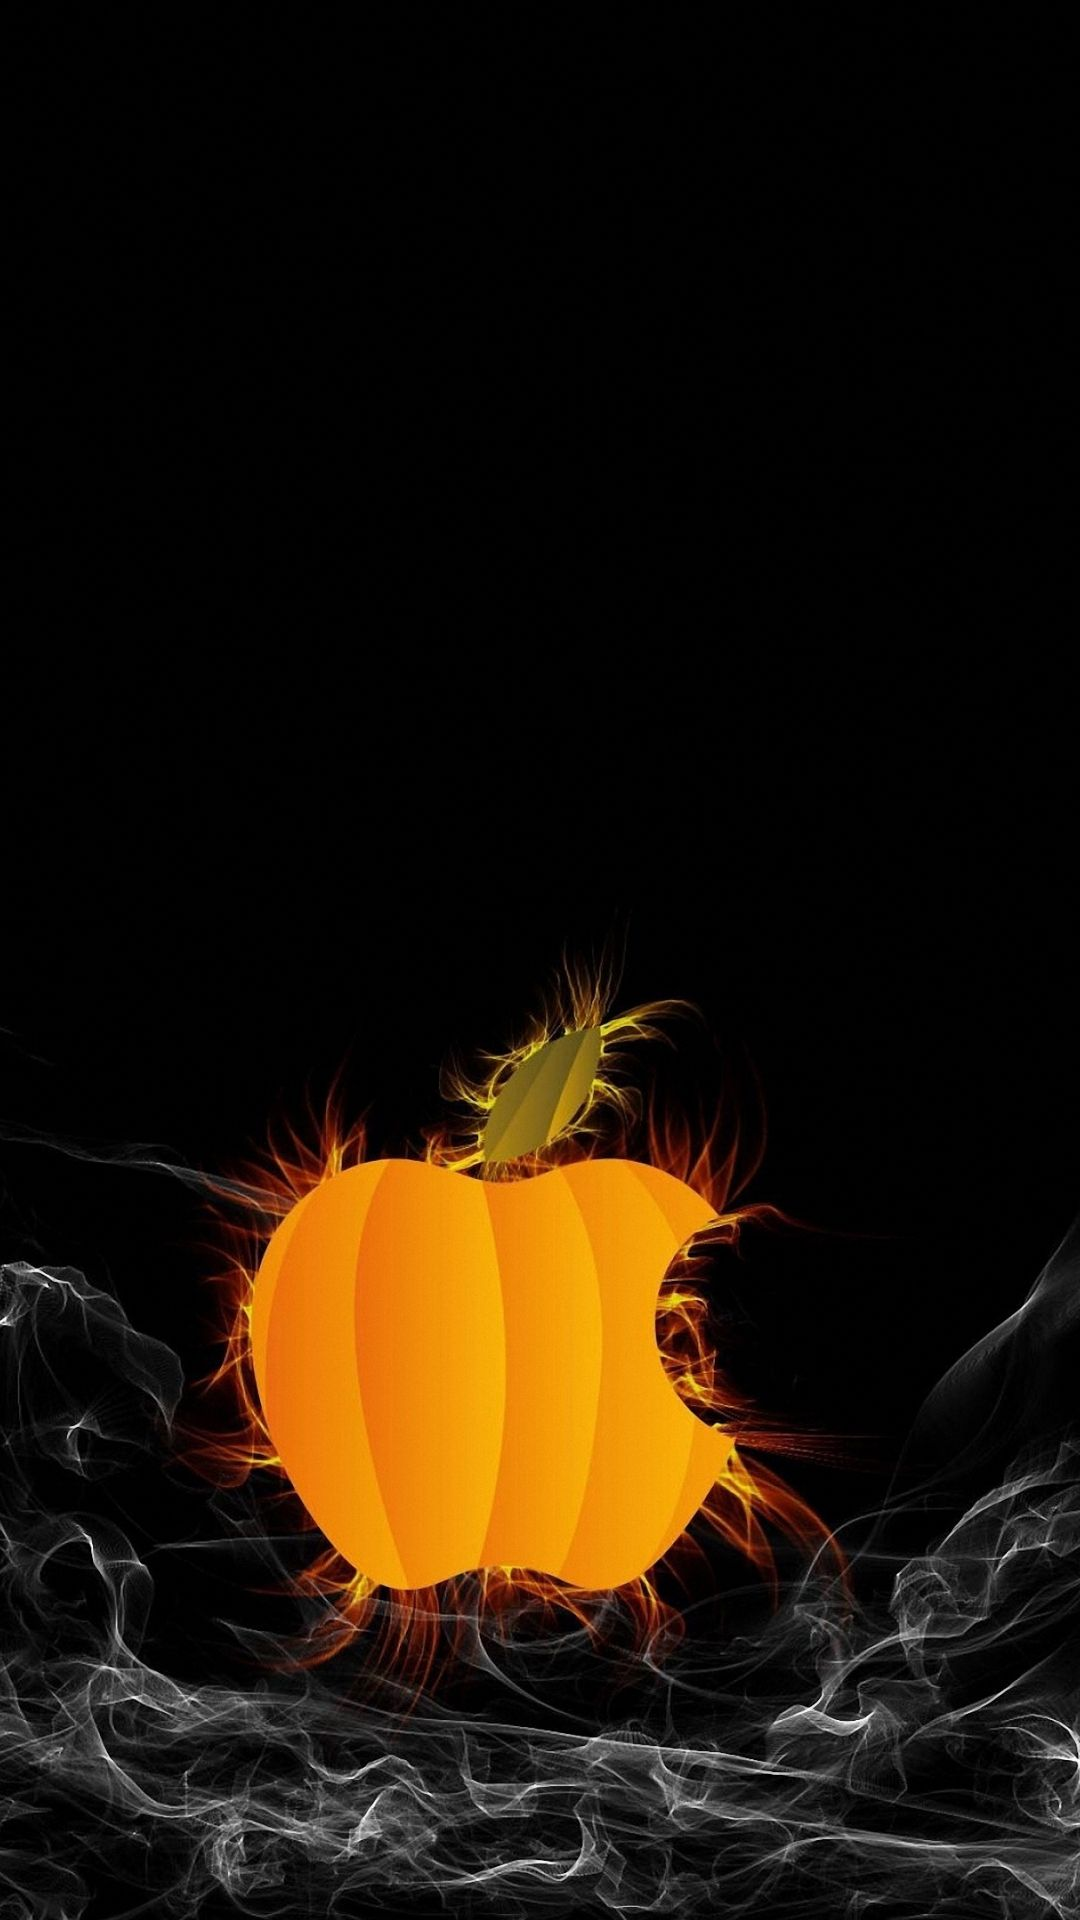 Iphone Fond Decran Hd Design Wallpaper 157 Fond D Ecran Halloween Fond Ecran Halloween Fond D Ecran Apple Watch